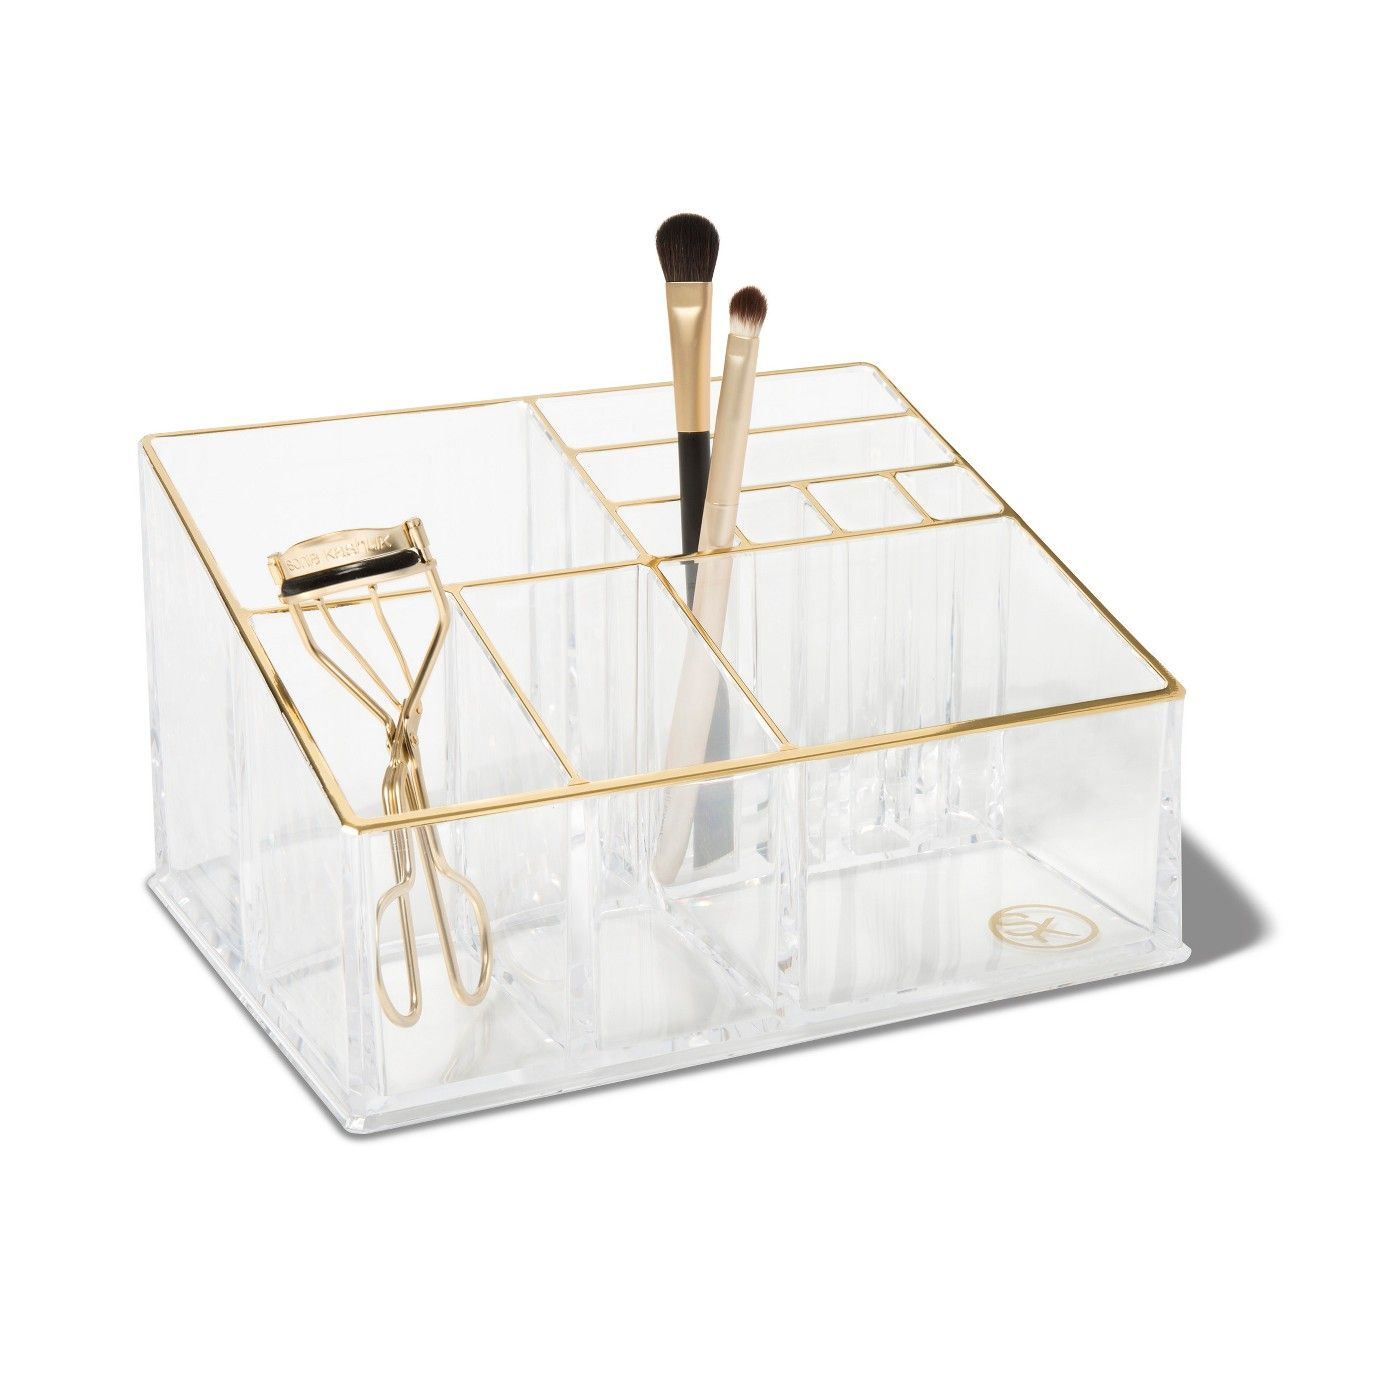 Mdesign Makeup Organizer For Bathroom Vanity Countertops Cabinets